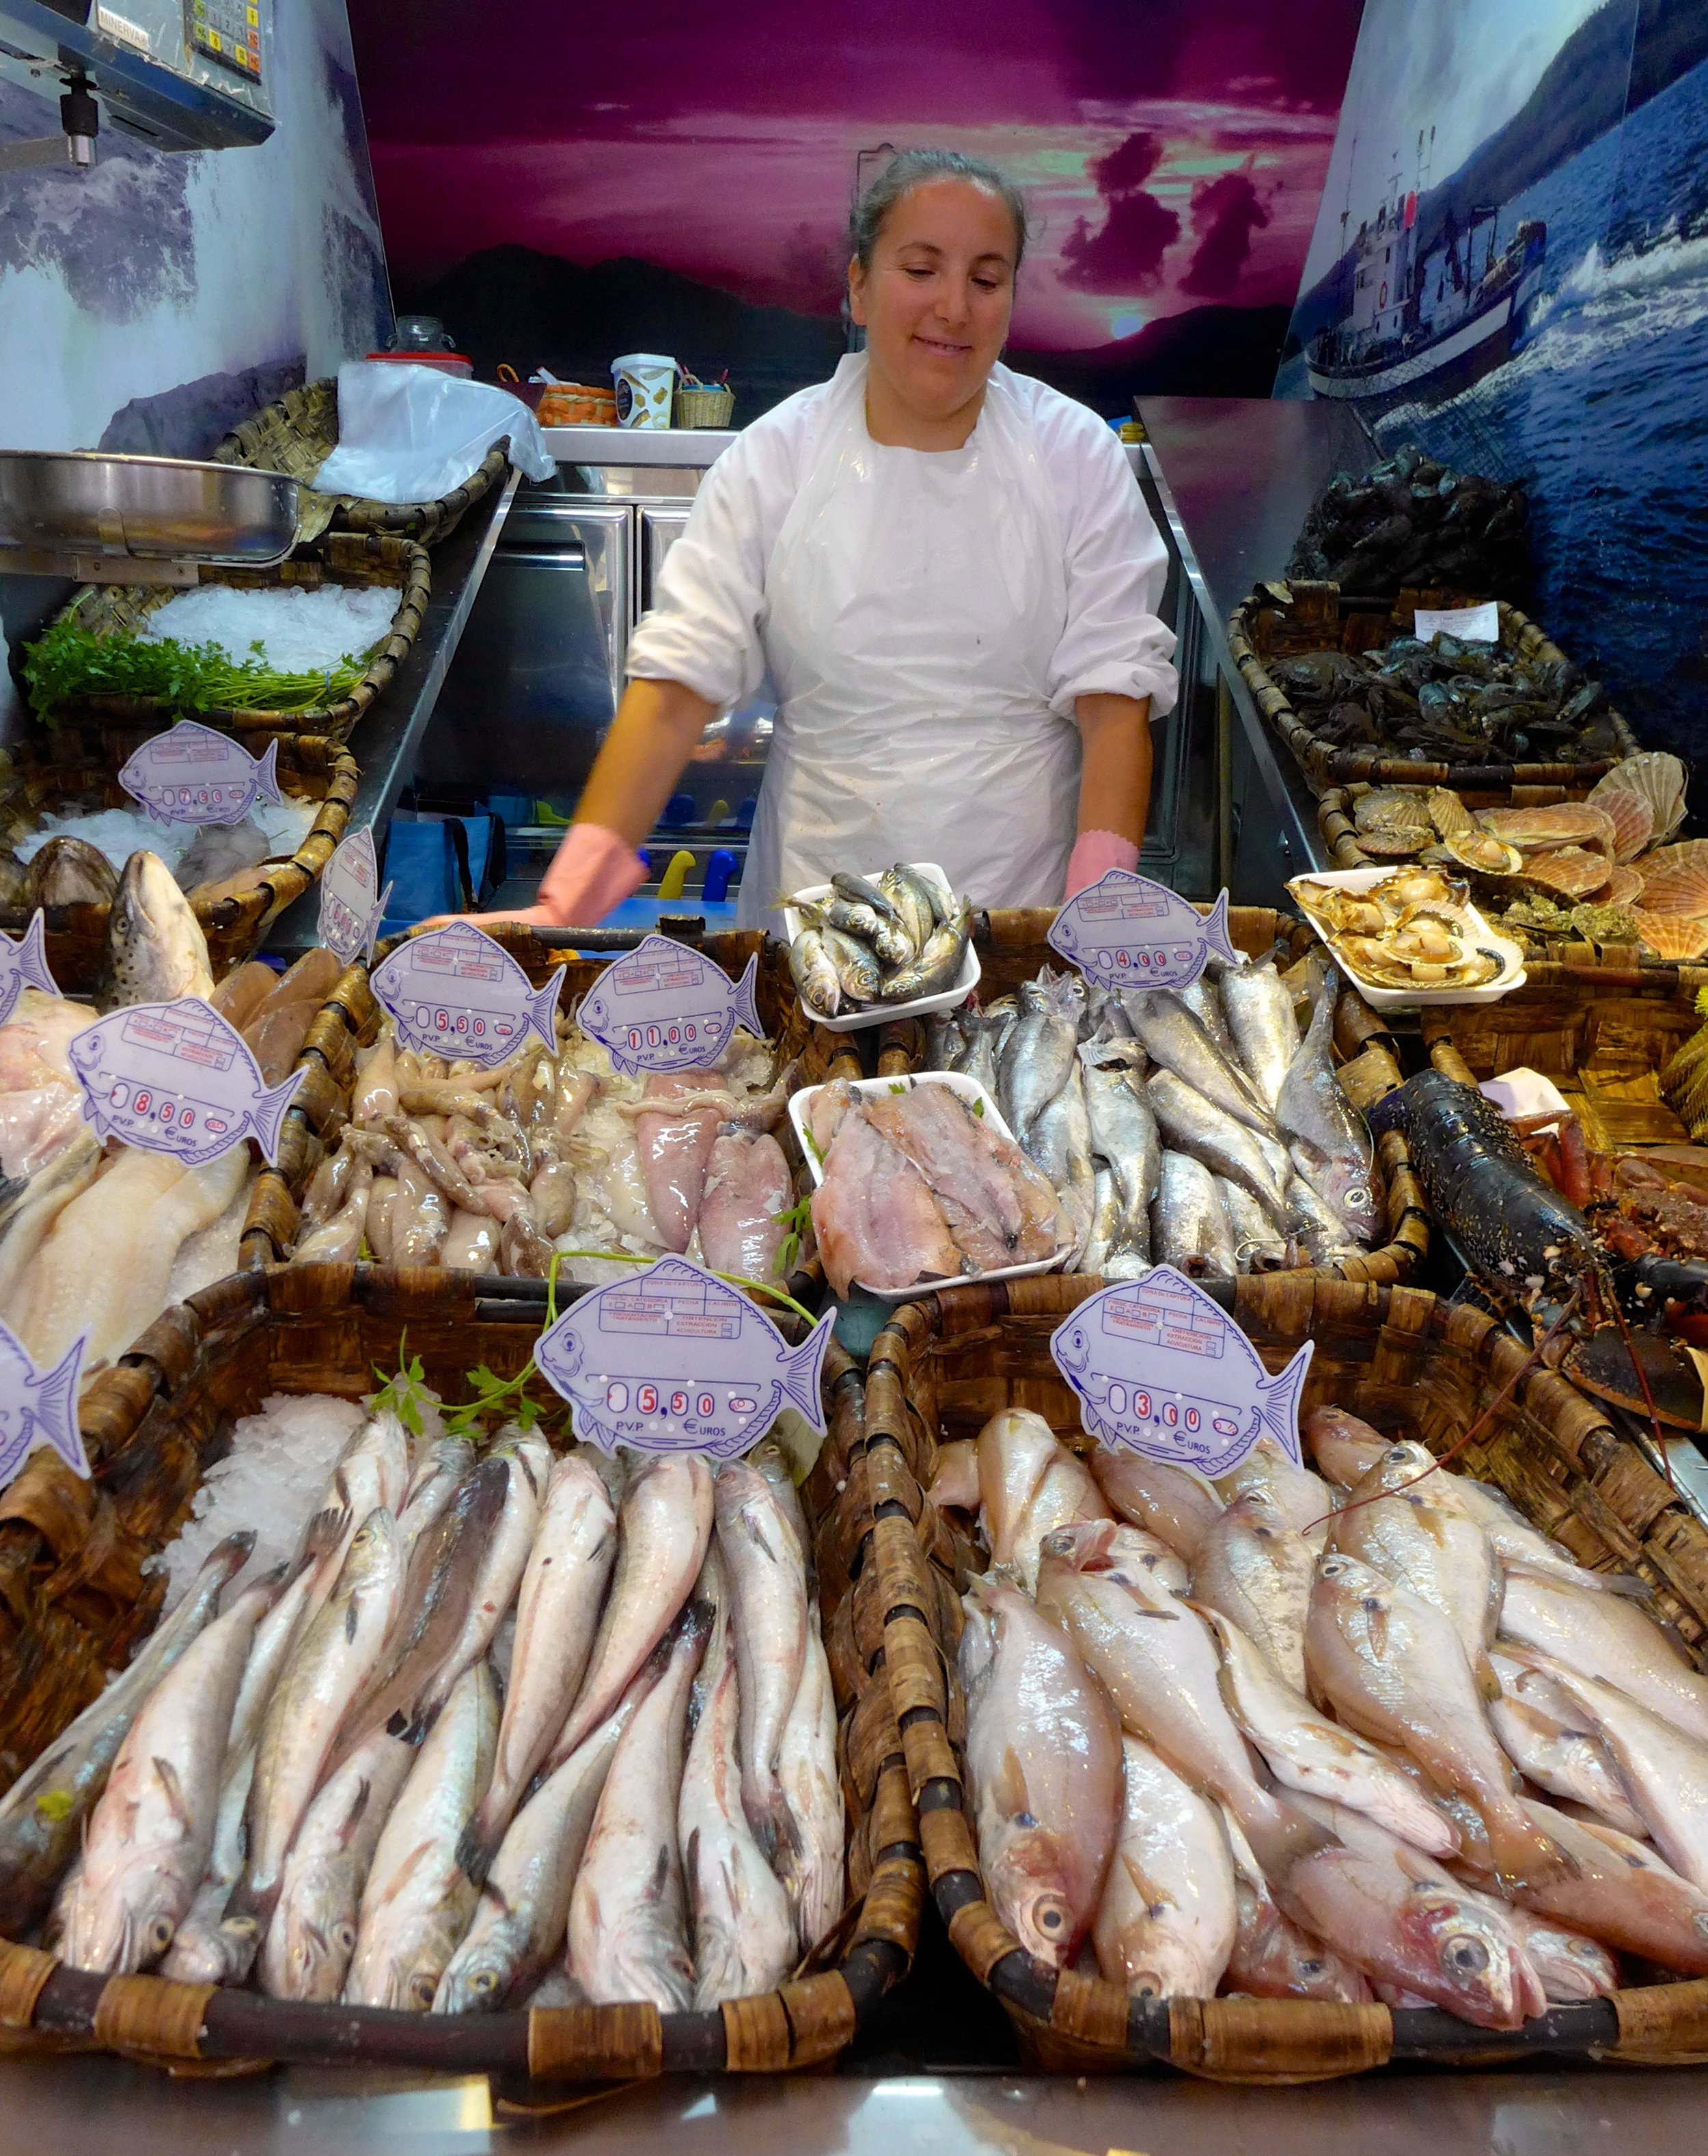 Fishmongers at Mercado de Abastos